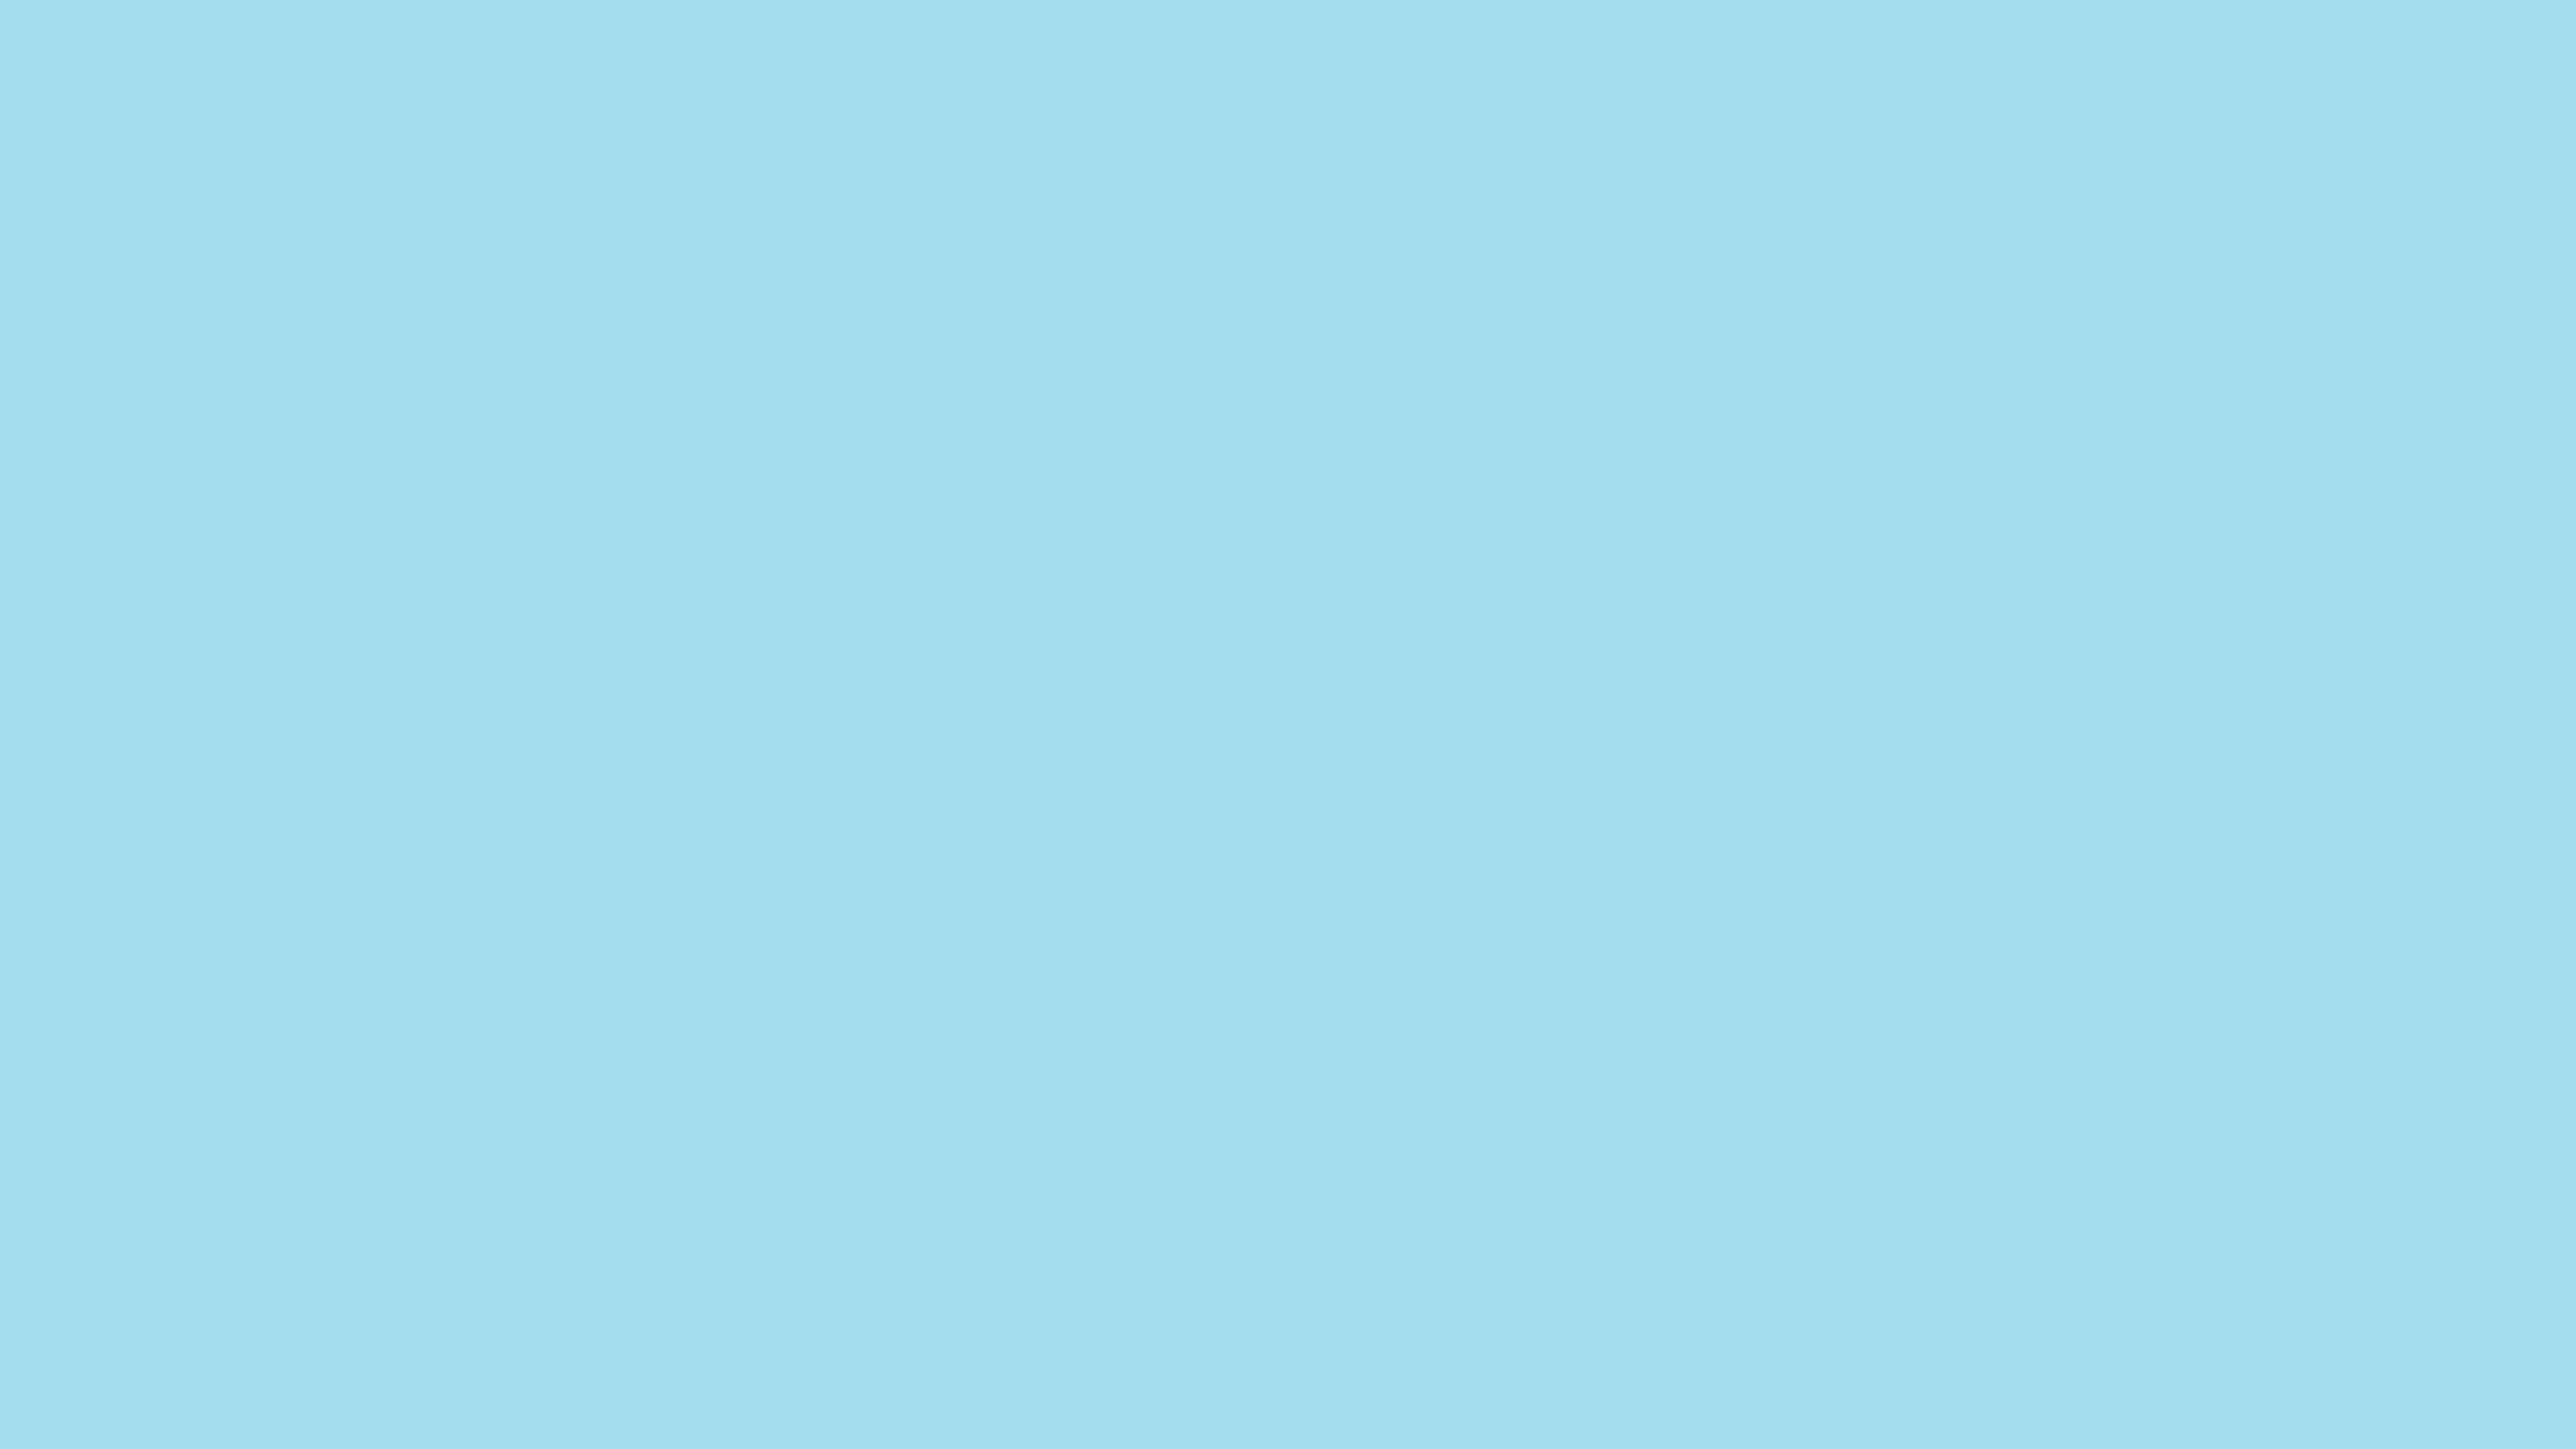 5120x2880 Non-photo Blue Solid Color Background